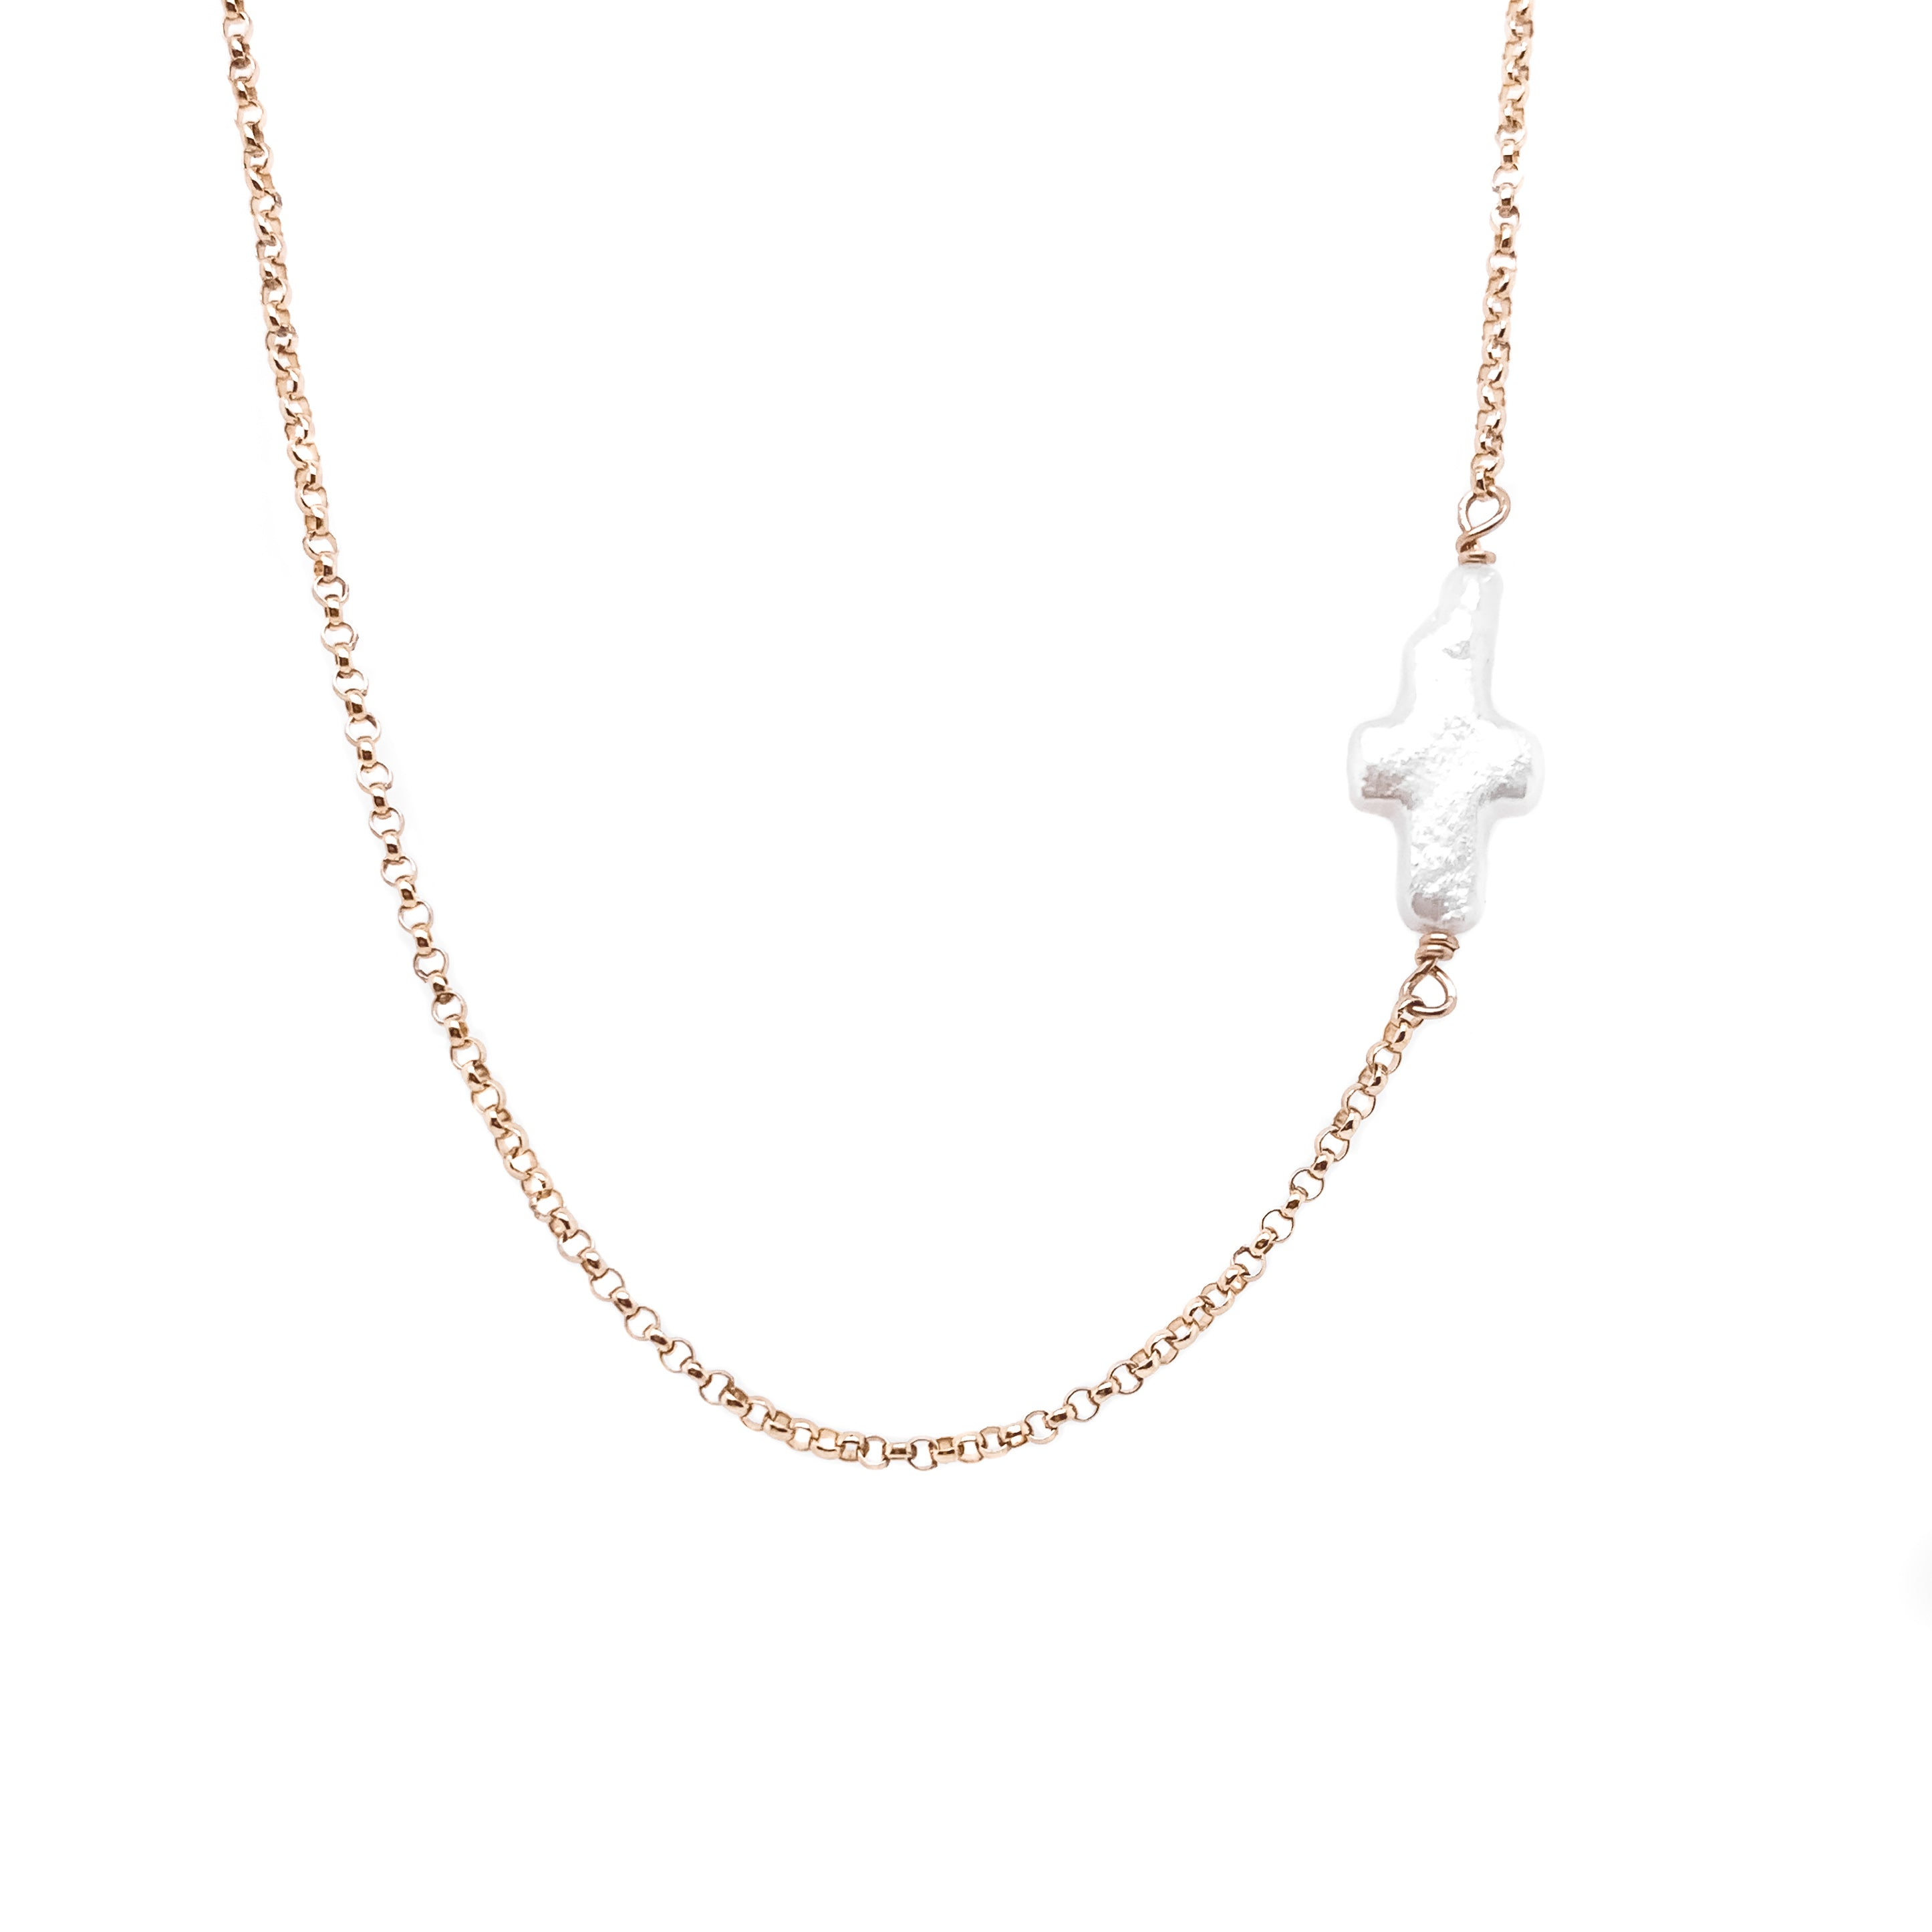 PEARL CROSS Necklace - 14K Gold Filled